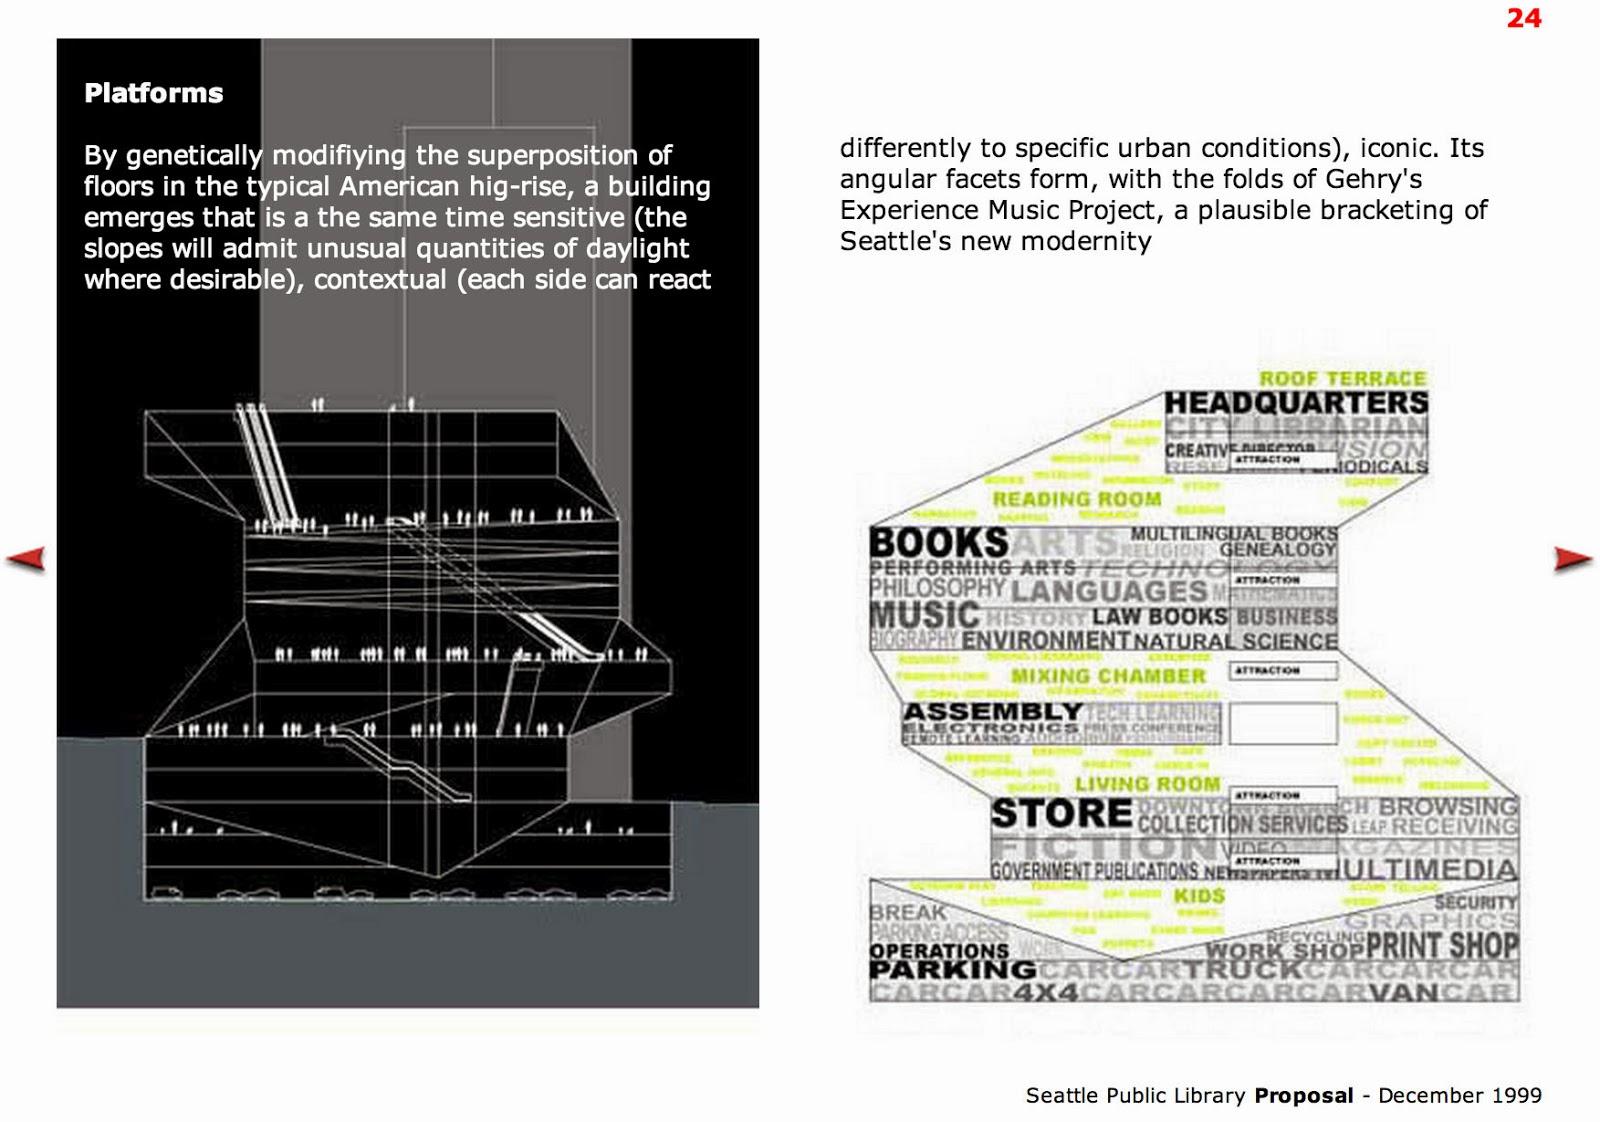 Uncommonplotfall2013 oma seattle public library proposal uncommonplotfall2013 oma seattle public library proposal schematic diagrams pooptronica Choice Image